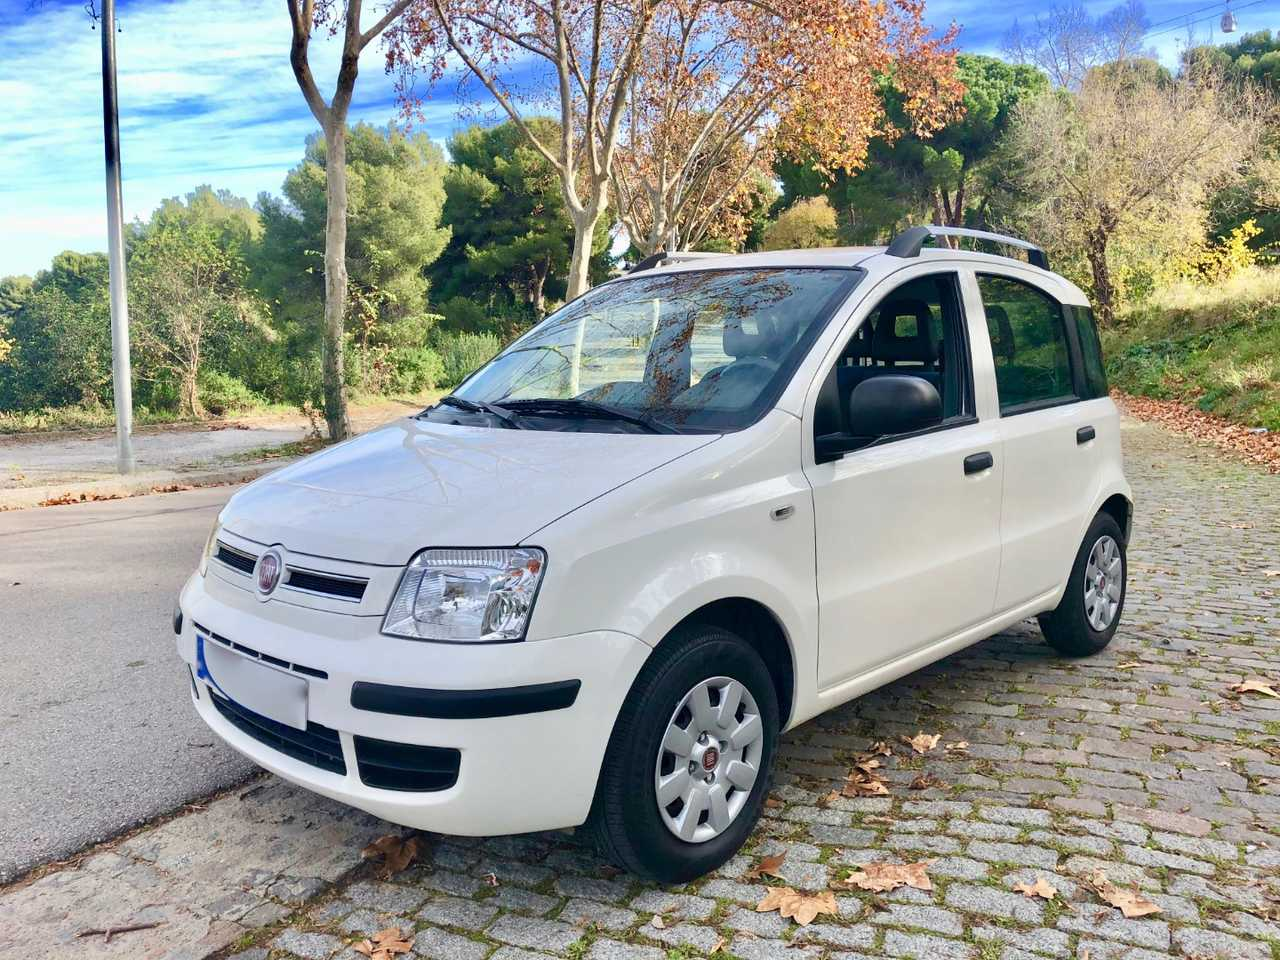 Fiat Panda 1.2 Dynamic. Unico dueño. Impecable.   - Foto 1